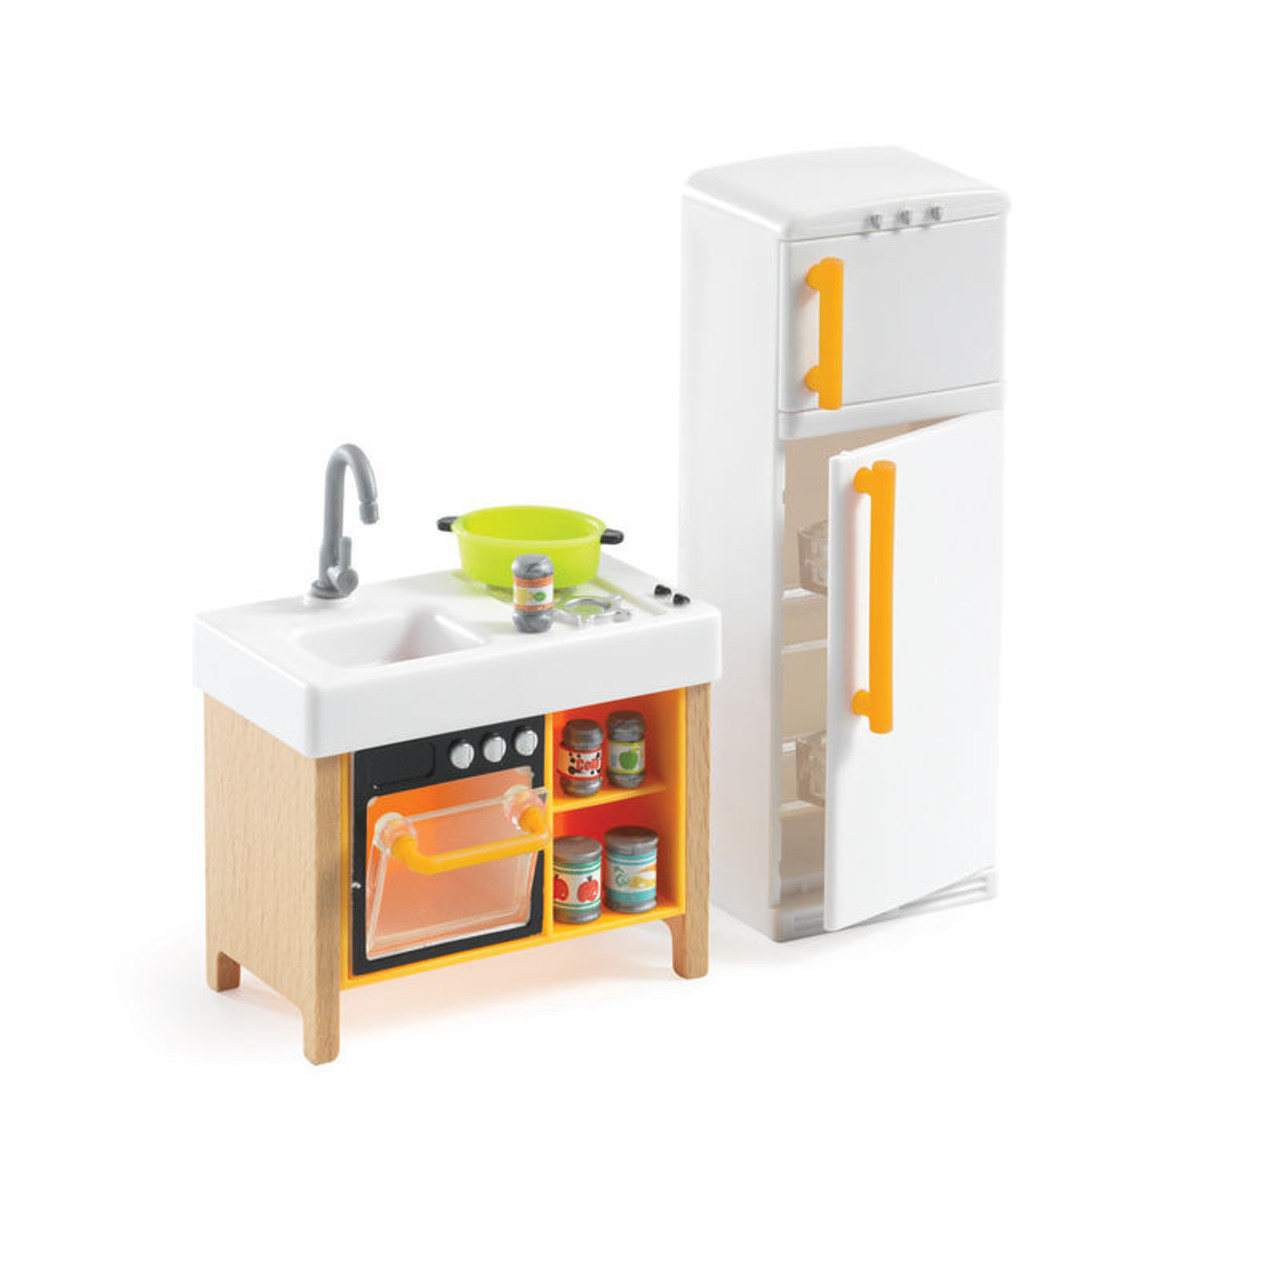 Djeco Doll House Compact Kitchen Furniture